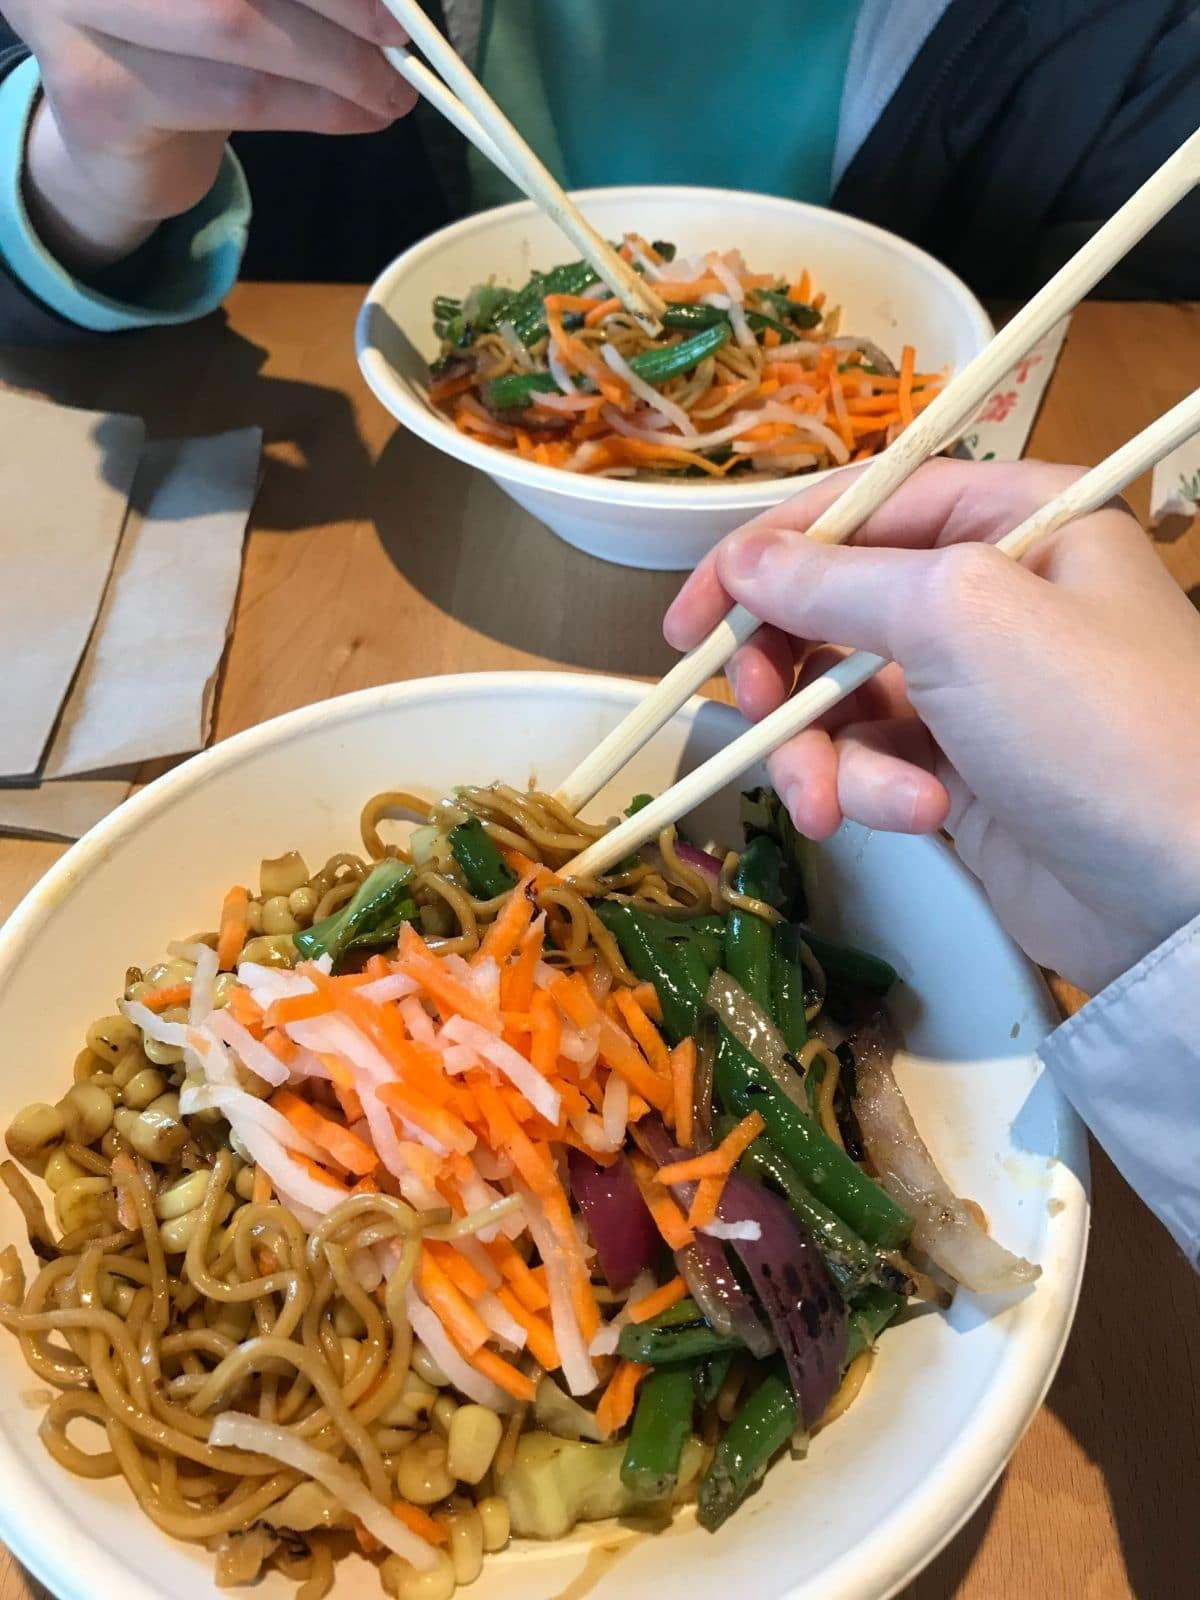 two bowls from zao that have yakisoba noodles, corn, green beans, carrots, and onions and are being eaten with chopsticks